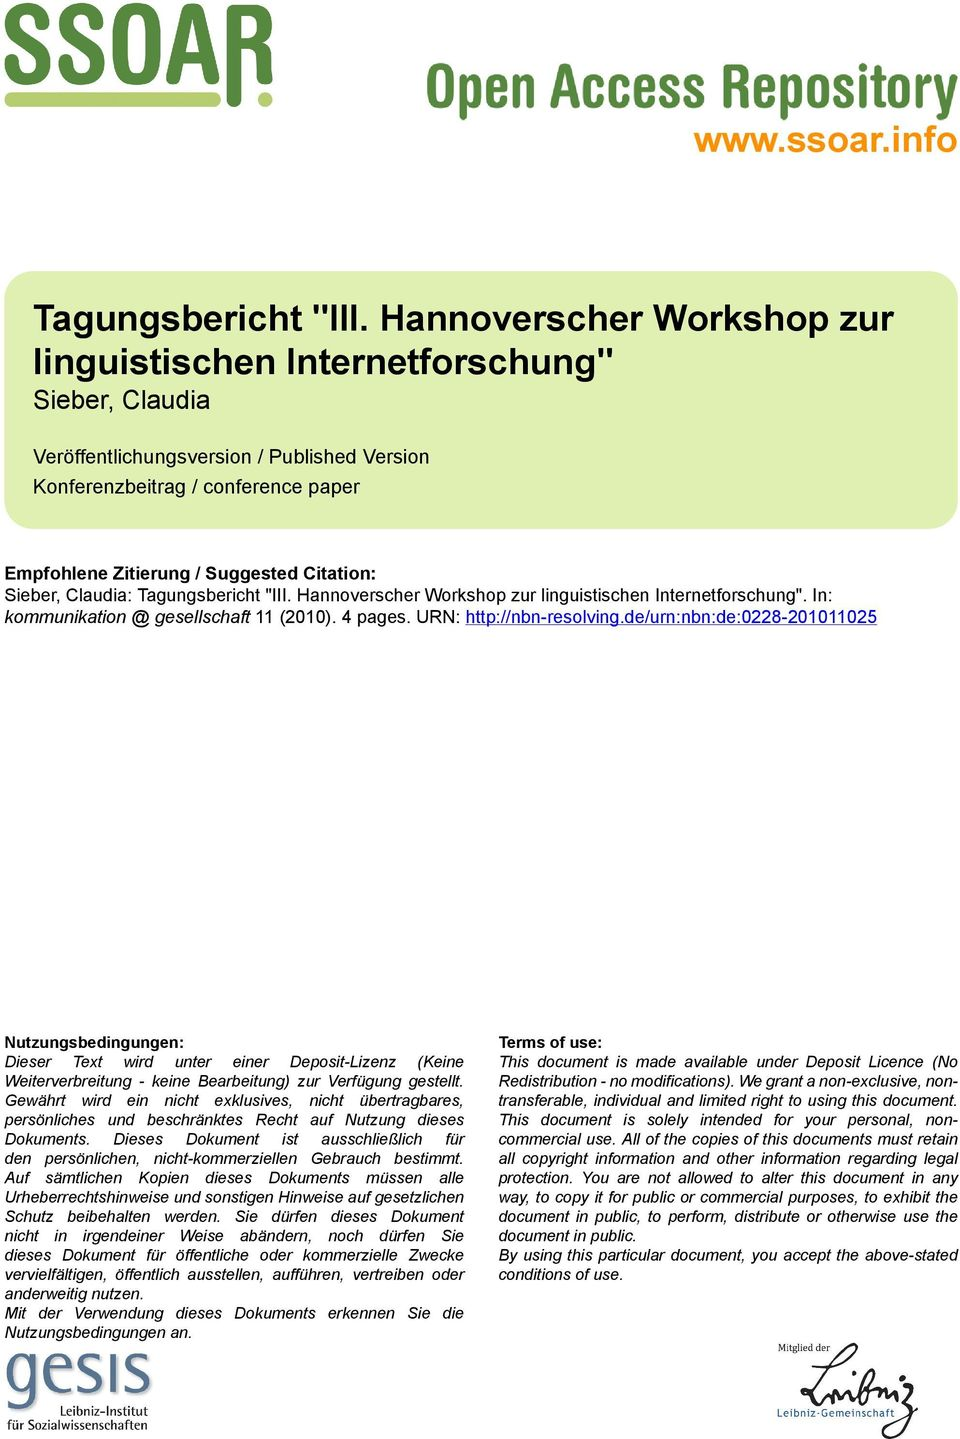 "Citation: Sieber, Claudia: Tagungsbericht ""III. Hannoverscher Workshop zur linguistischen Internetforschung"". In: kommunikation @ gesellschaft 11 (2010). 4 pages."